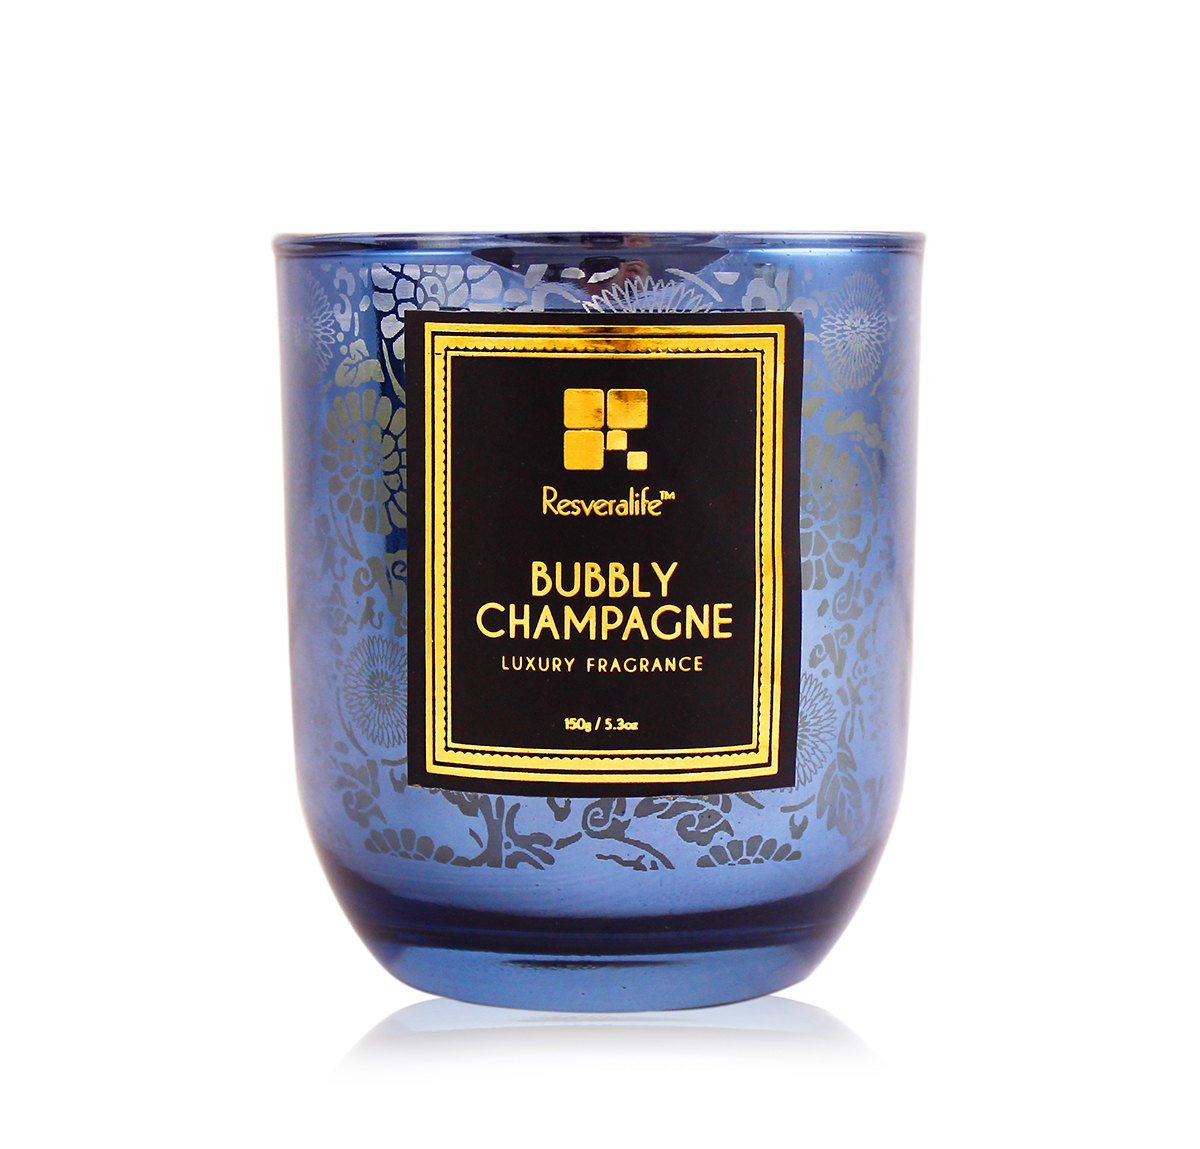 Resveralife Bubbly Champagne Candle